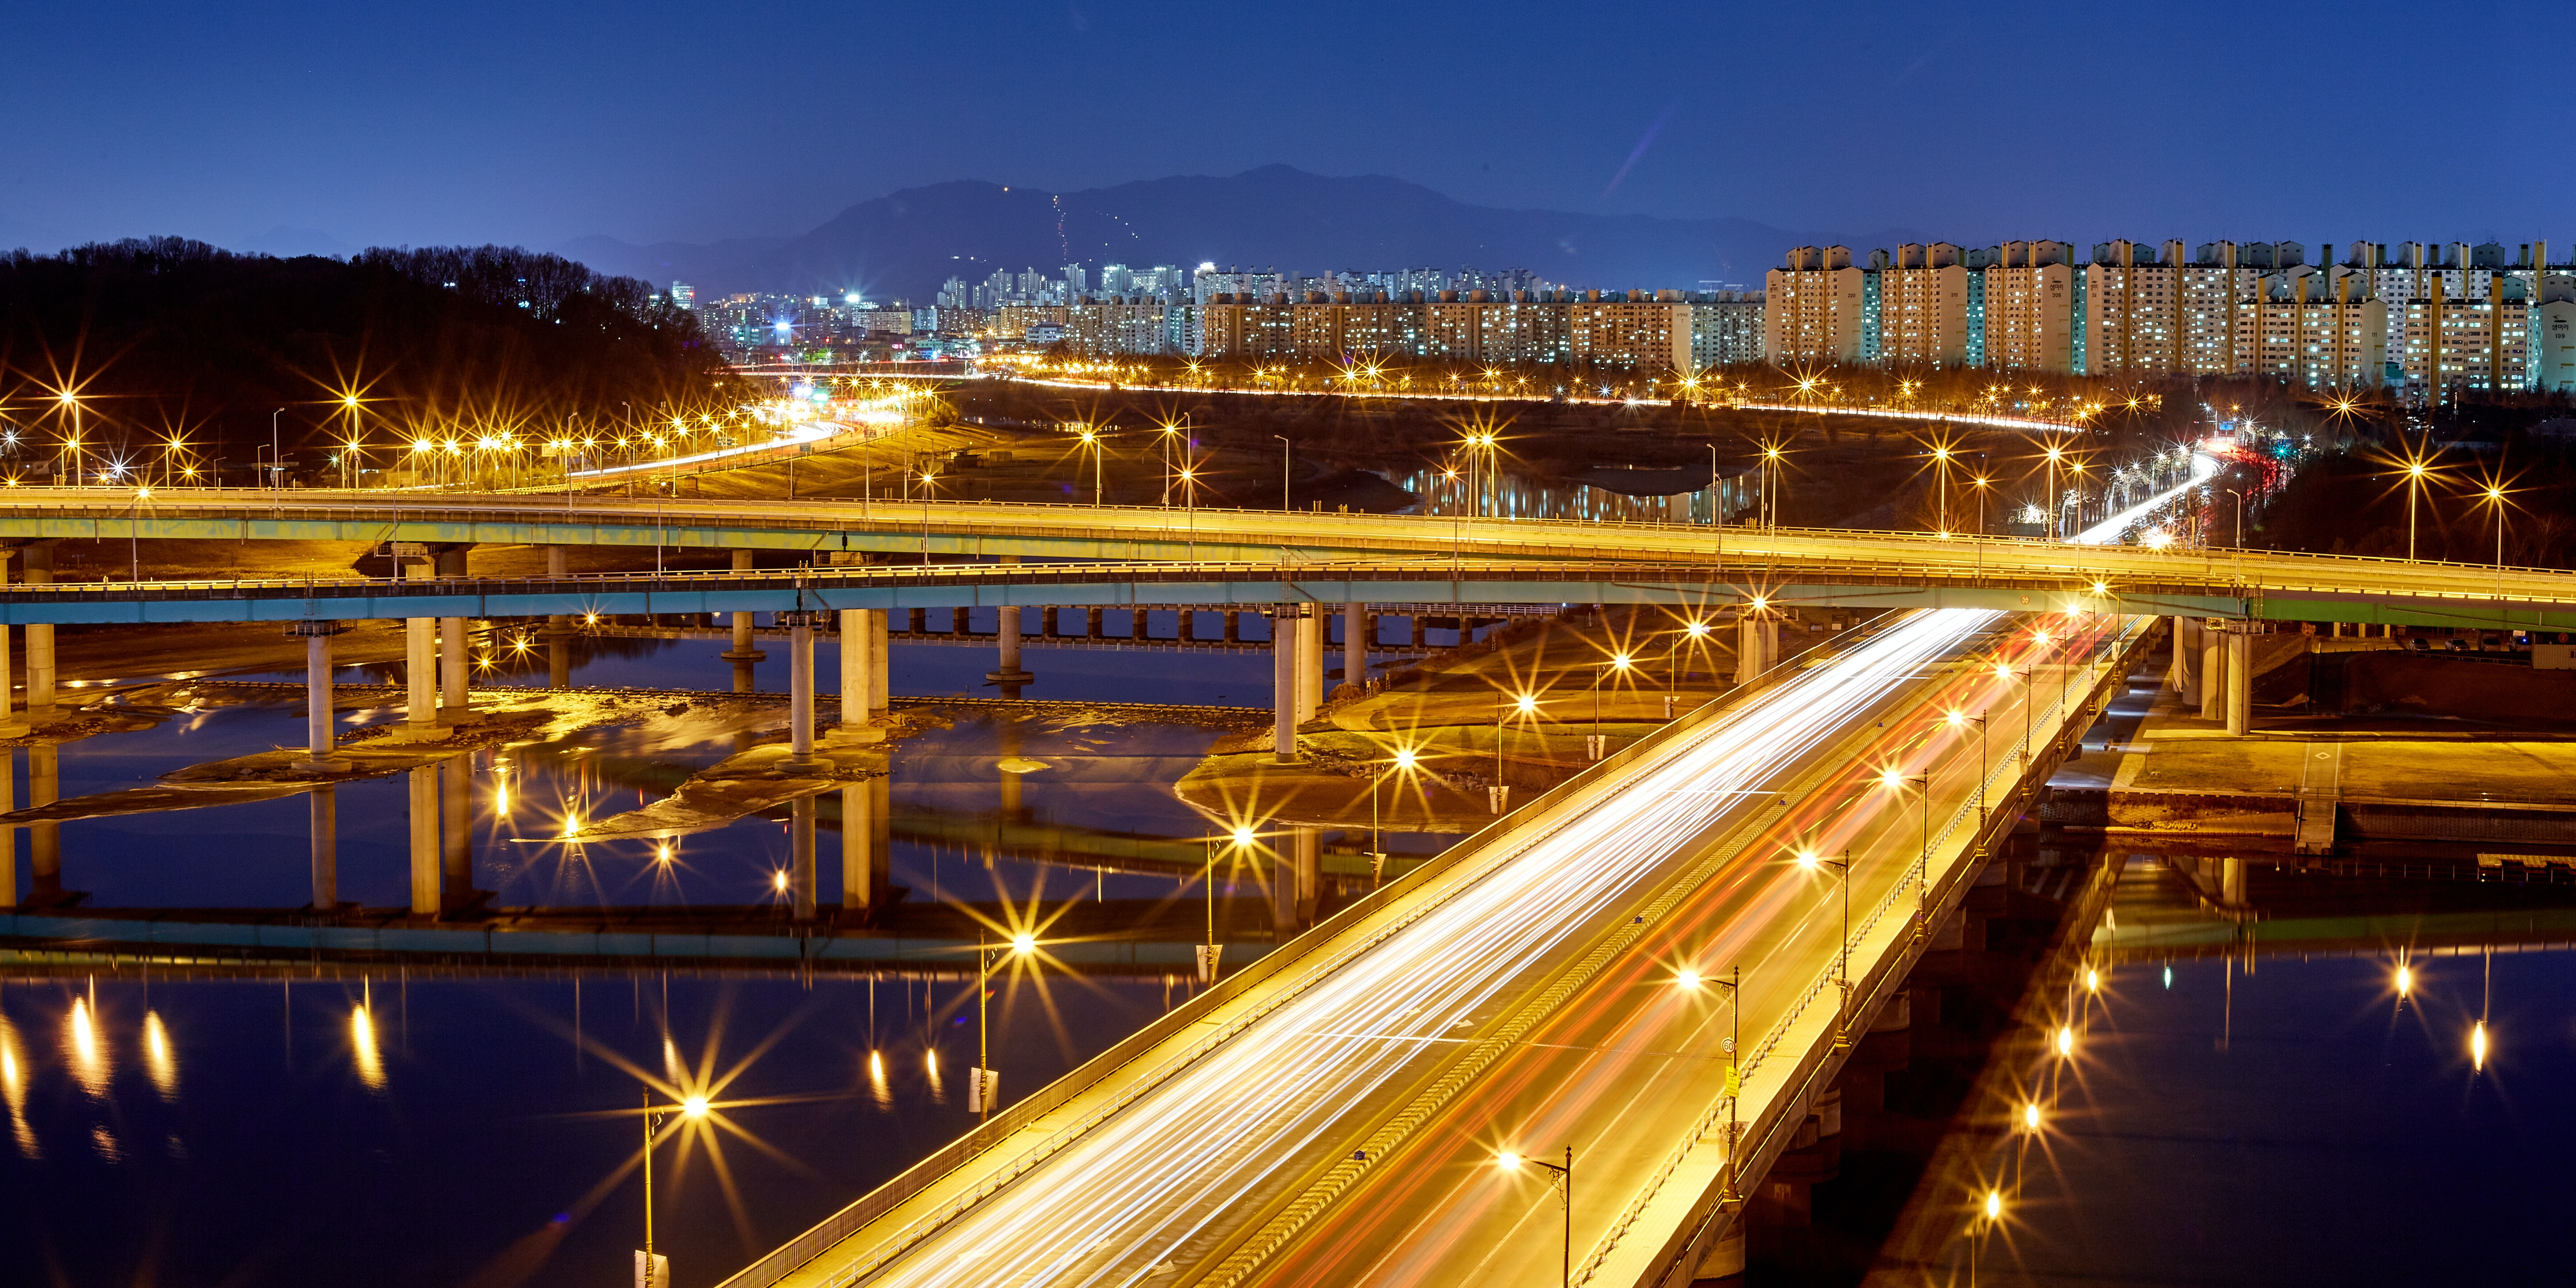 timelapse photography of cars running on highway and flyover at night